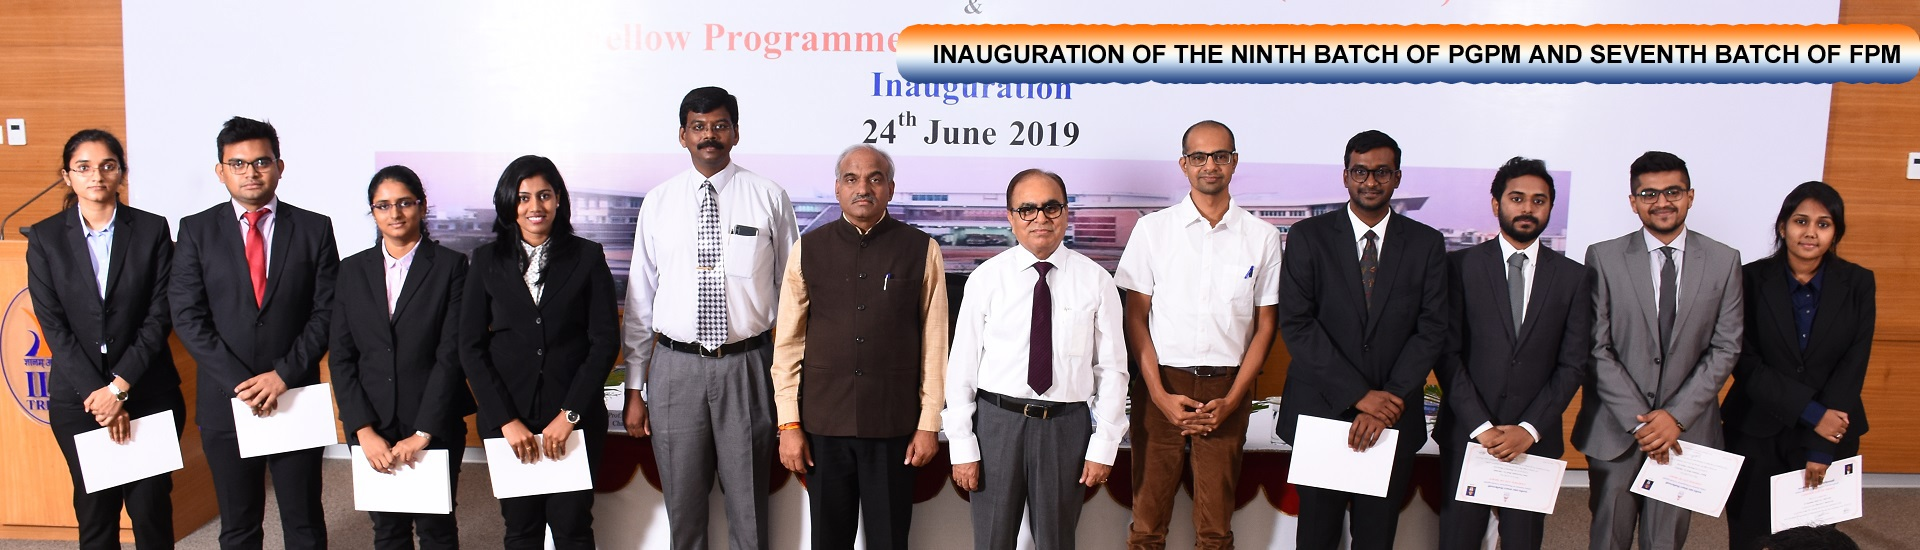 PGPM Inauguration 2019